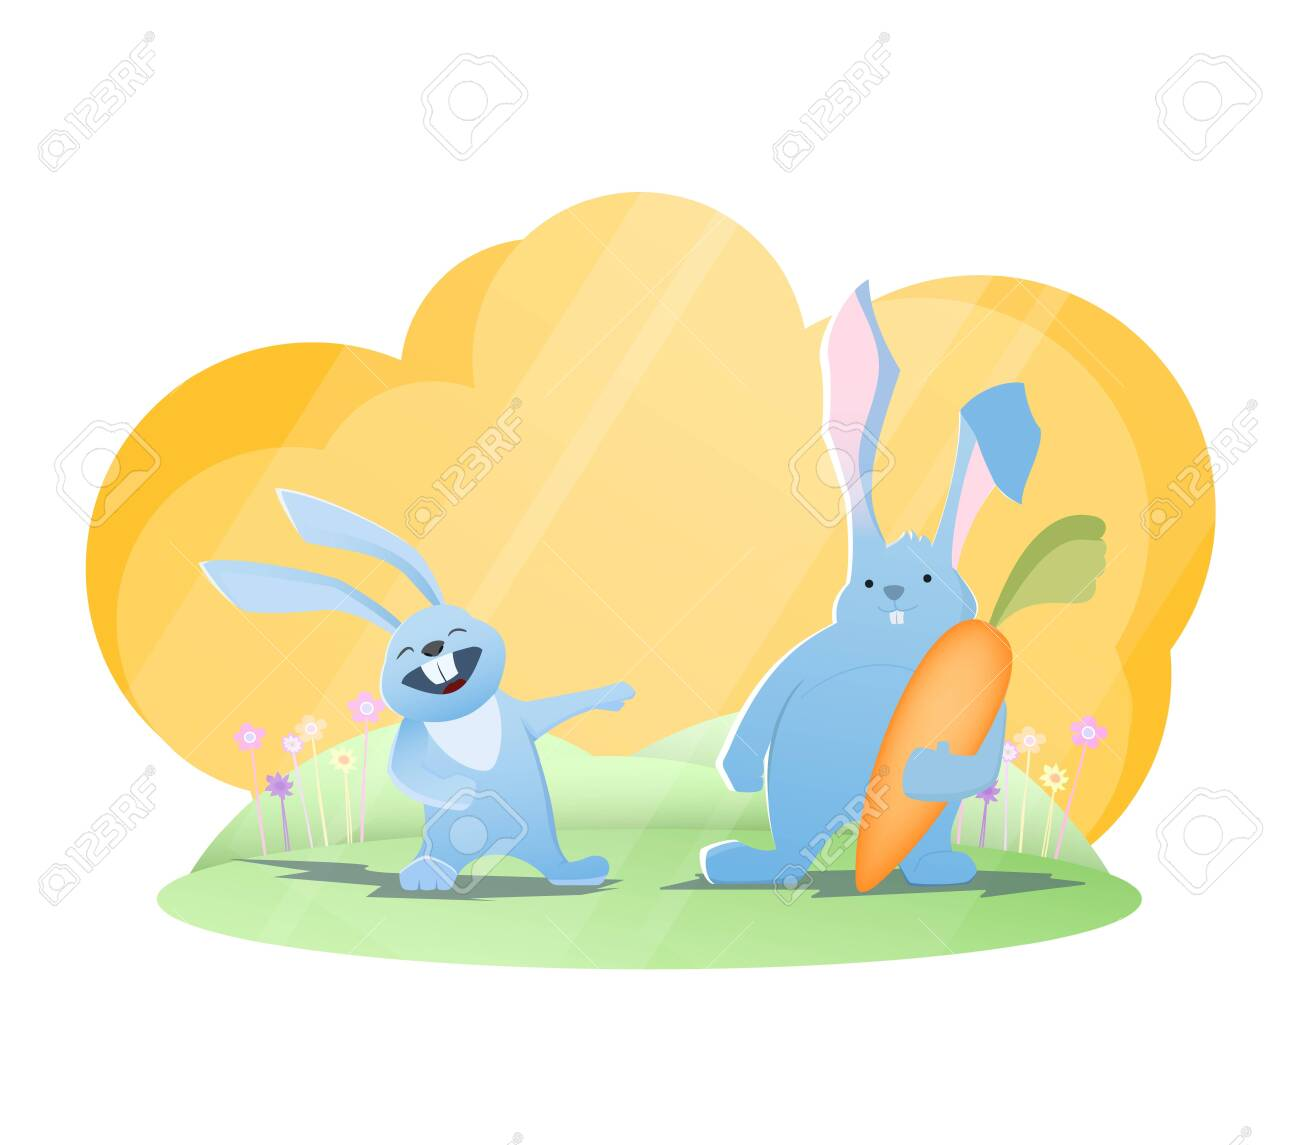 Funny rabbits. Rabbit laughing on another rabbit with huge carrot. Vector illustration - 133165163